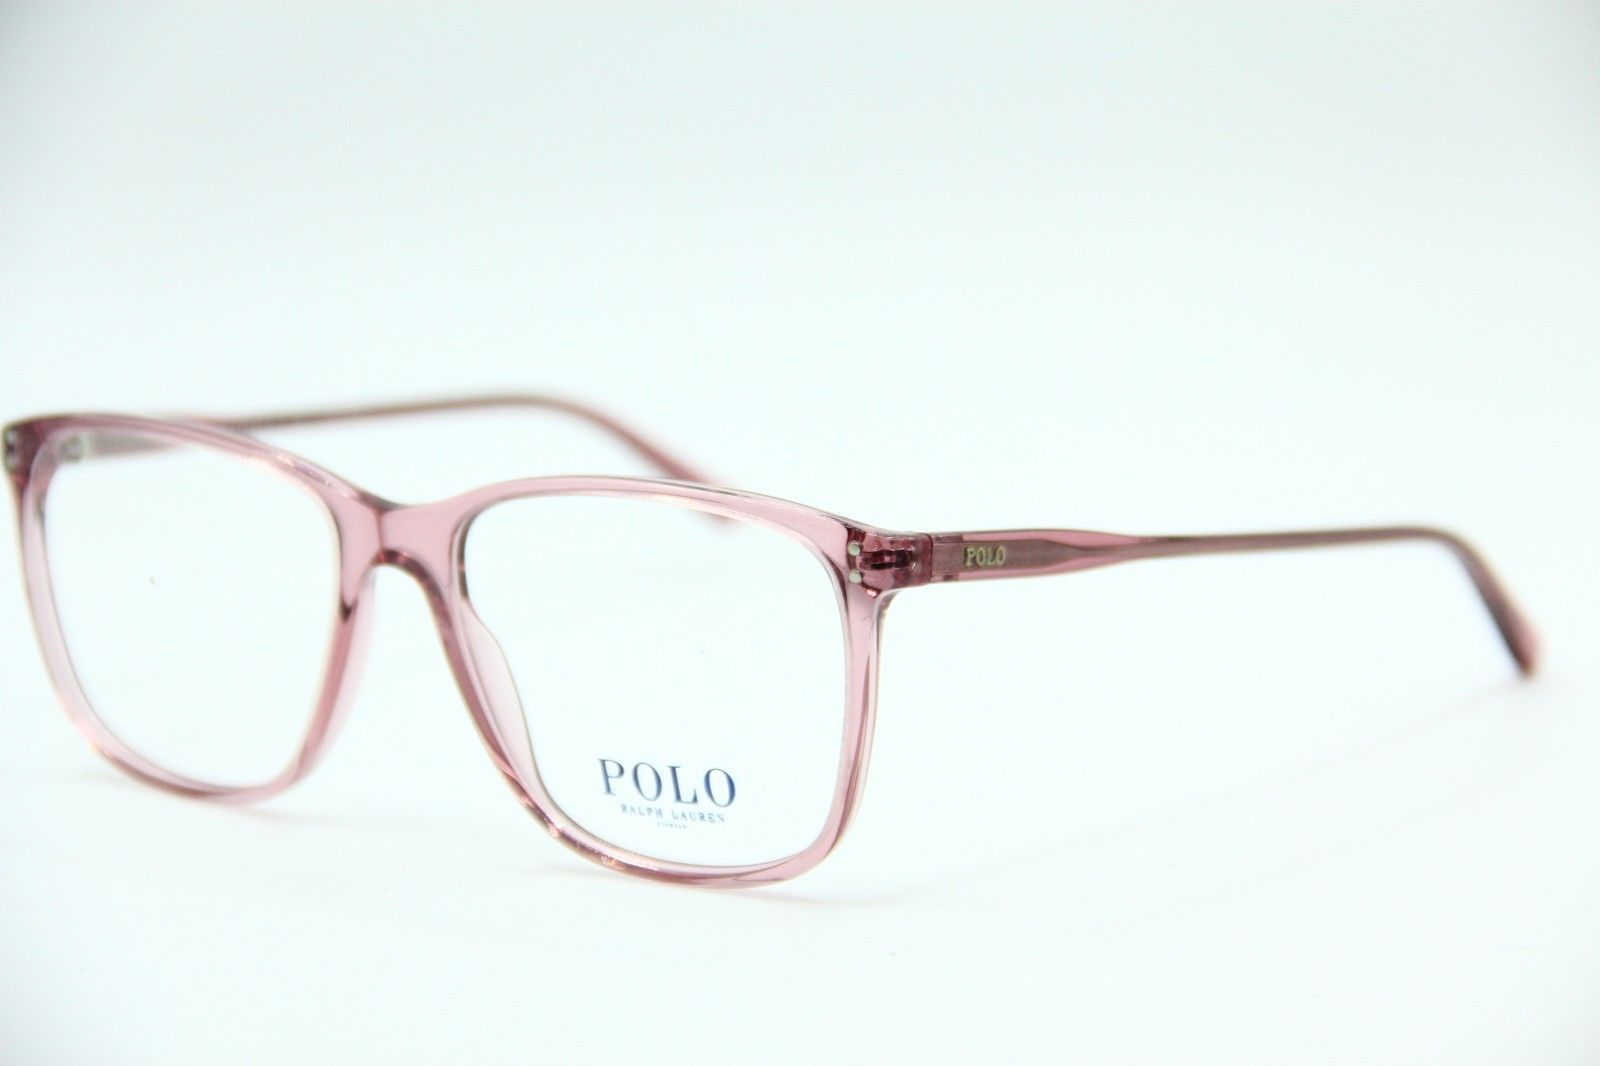 a685258f46 New Polo Ralph Lauren Ph 2138 5220 Pink and 50 similar items. 57